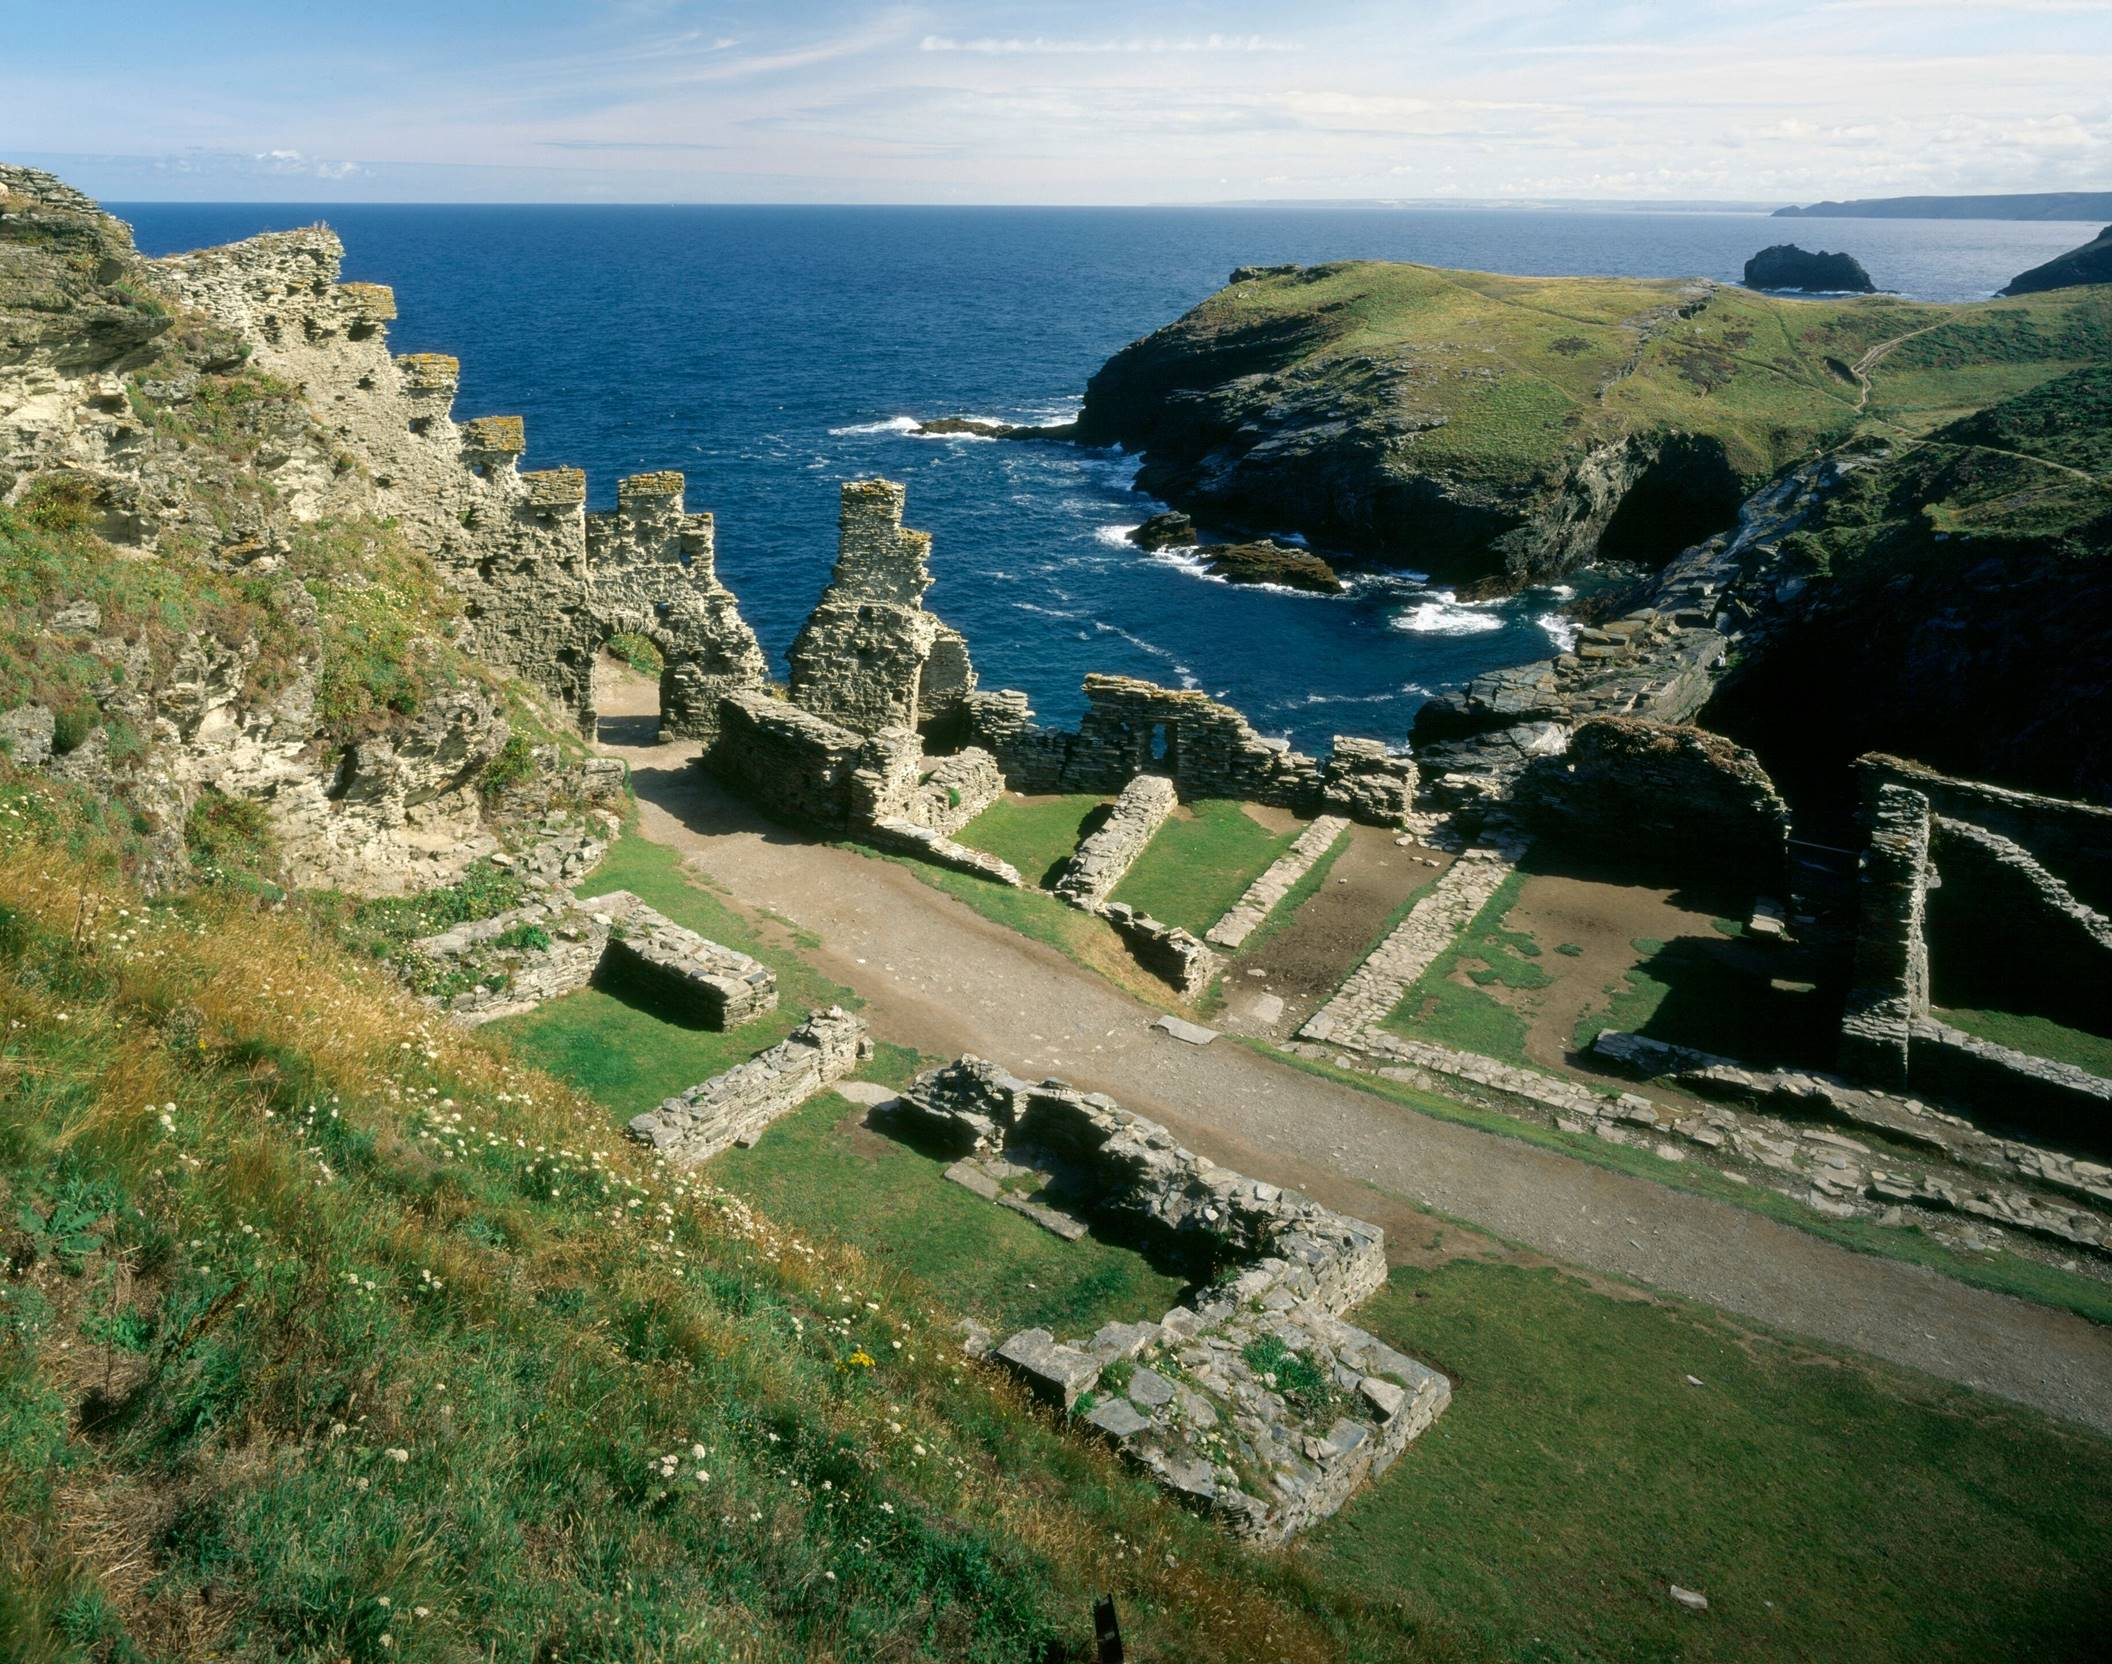 In the Footsteps of King Arthur